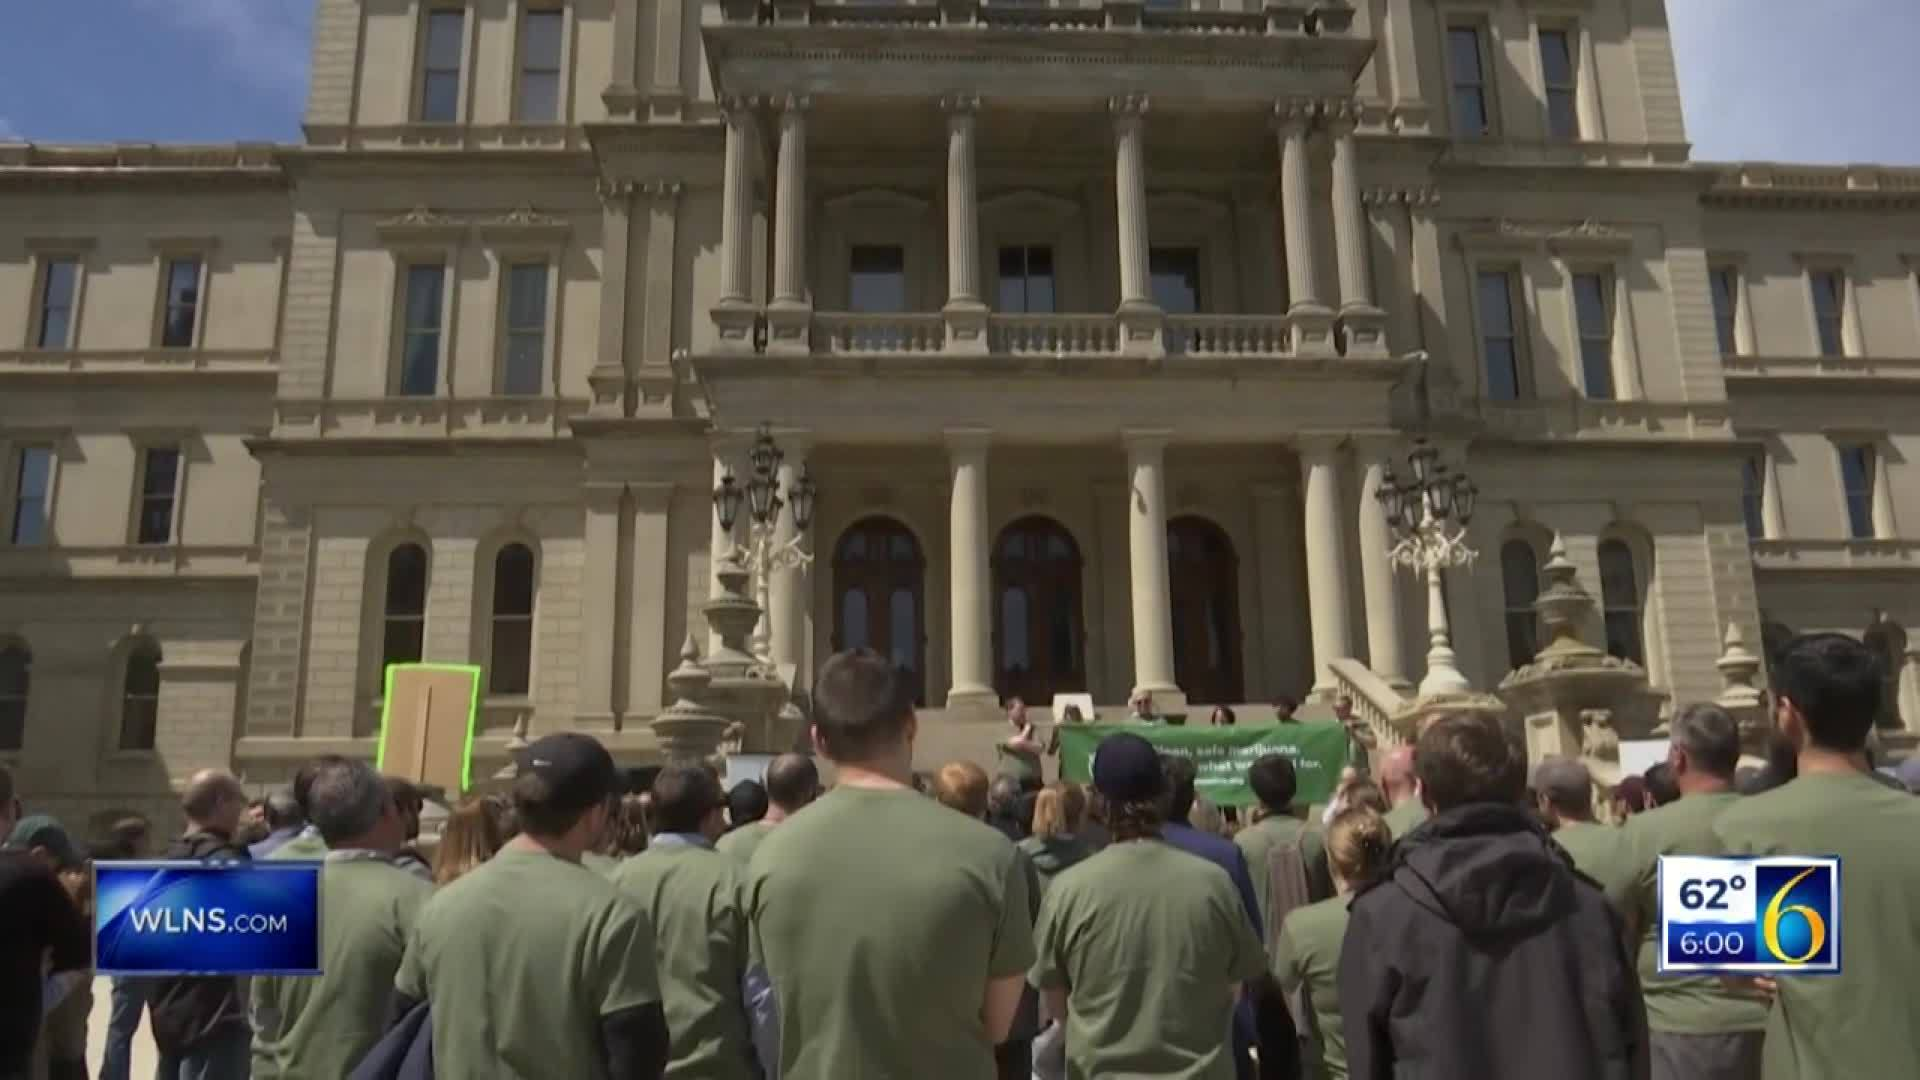 Marijuana protesters meet at Capitol